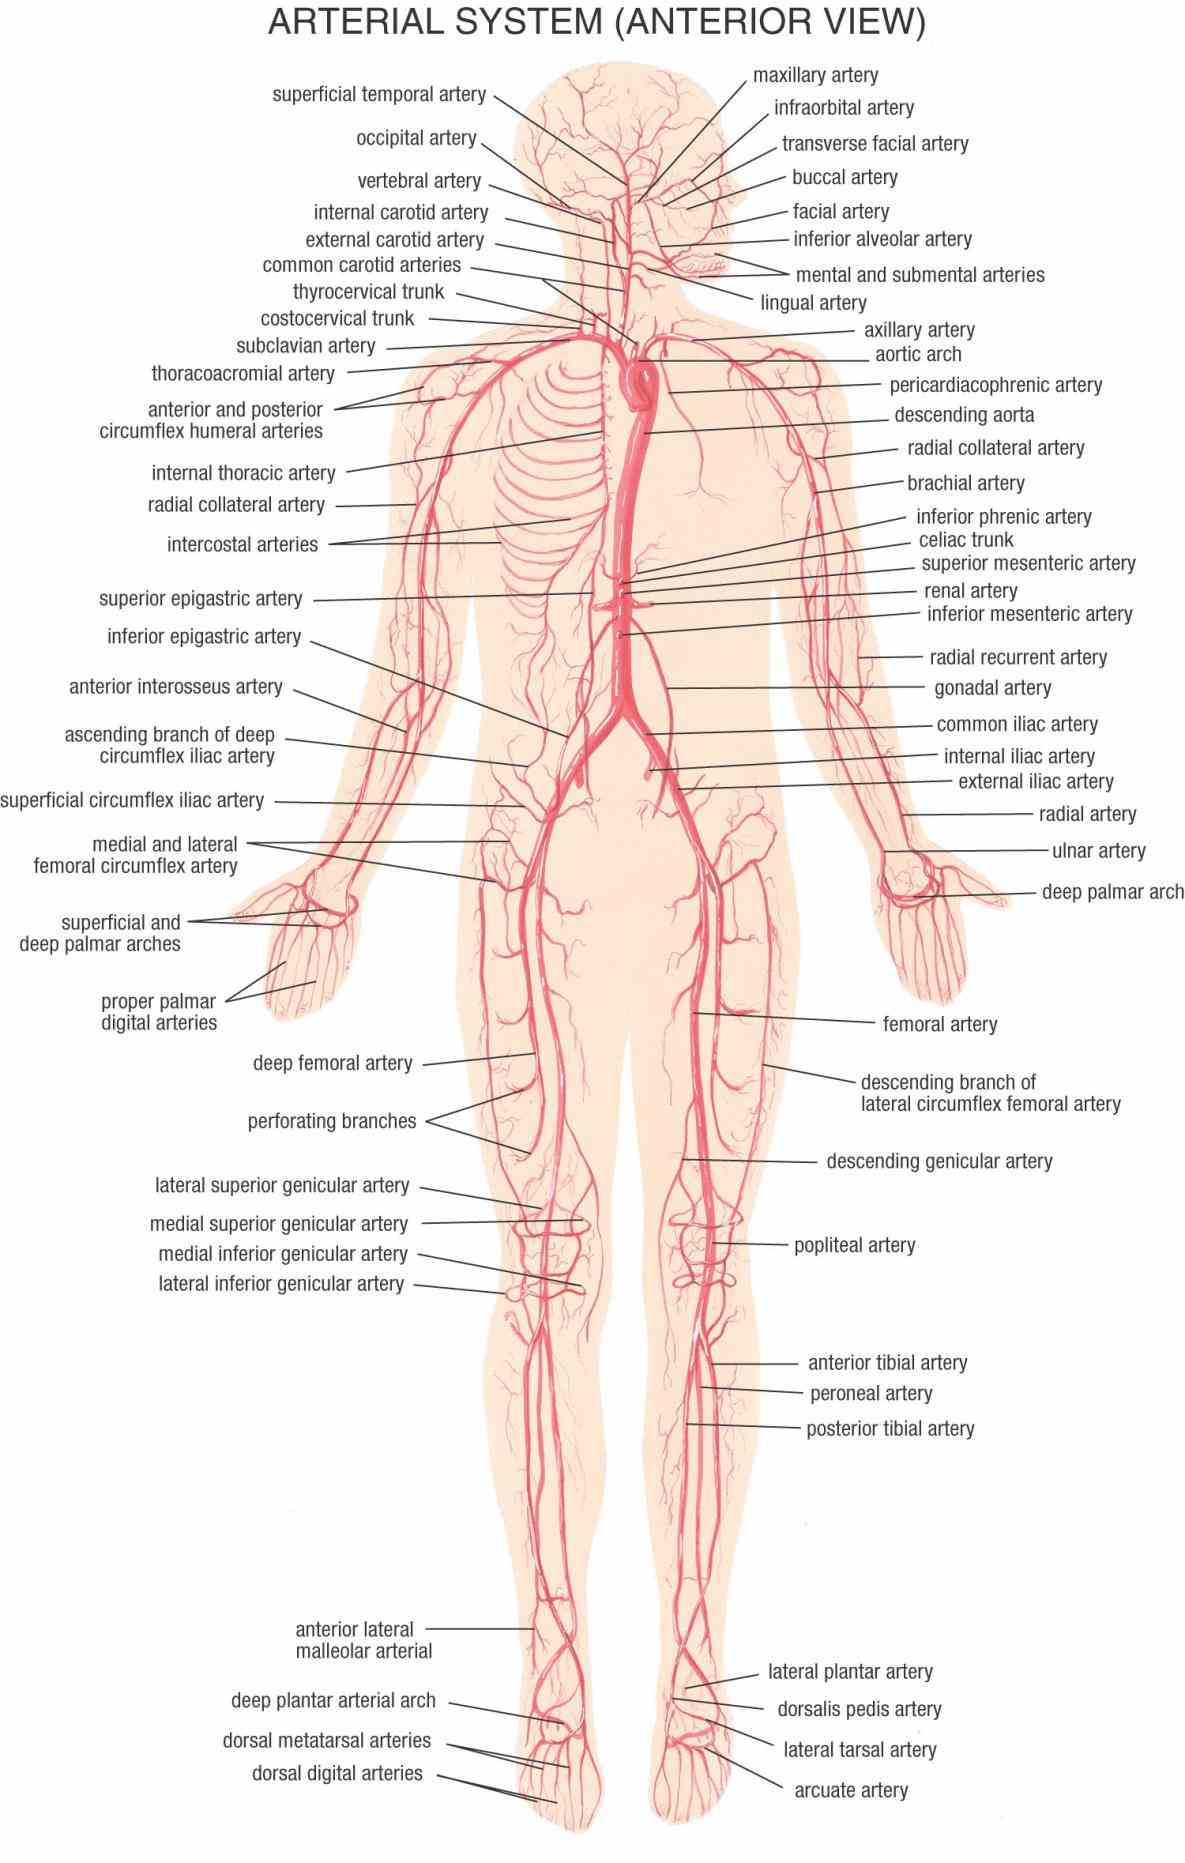 neck common carotid artery relations; external artery; the  de All Arteries In The Human Body fev all rights reserved